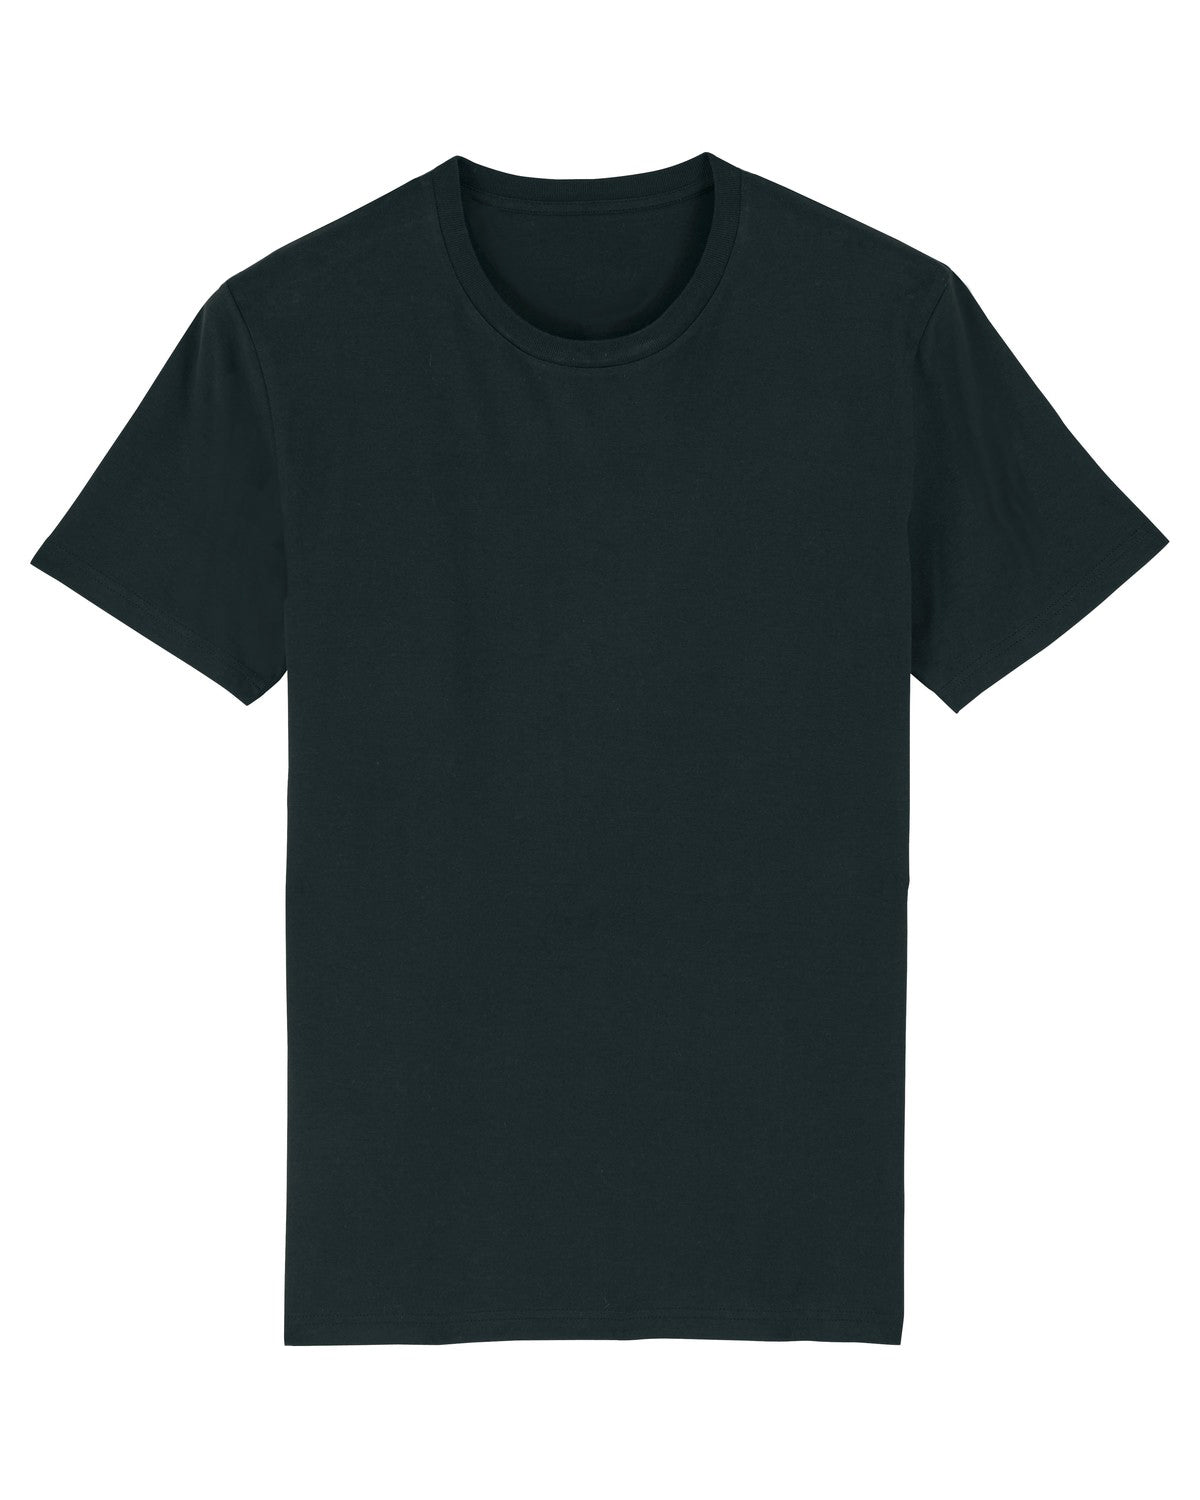 Attenborough Organic T-Shirt - Black